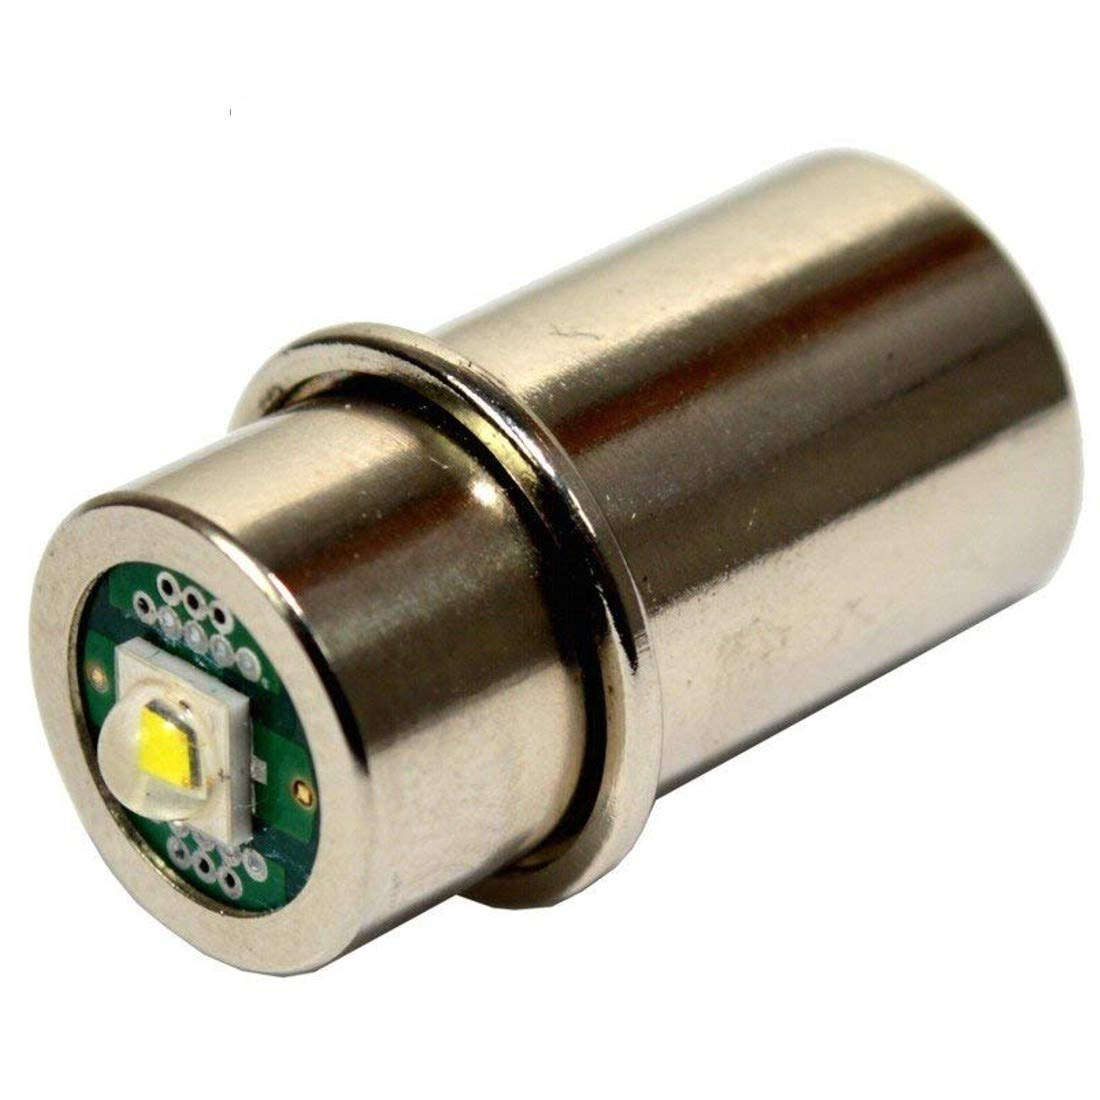 MAGLITE MINI 2AA SWITCH ASSEMBLY REPLACEMENT FLASHLIGHT TORCH GENUINE PART AU